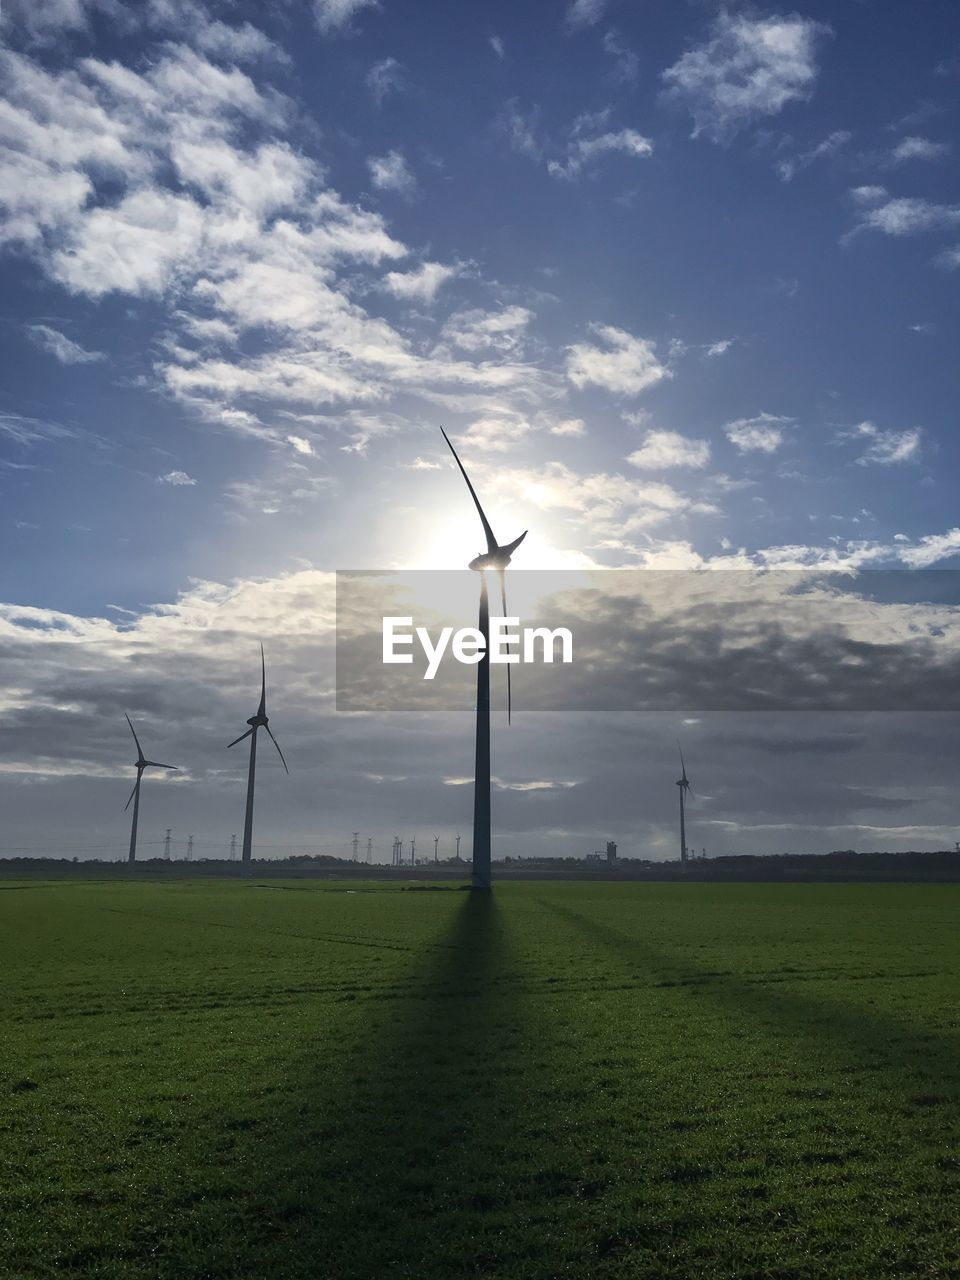 environment, fuel and power generation, wind turbine, sky, turbine, renewable energy, alternative energy, wind power, field, land, environmental conservation, grass, landscape, cloud - sky, scenics - nature, beauty in nature, nature, green color, technology, no people, outdoors, sustainable resources, power supply